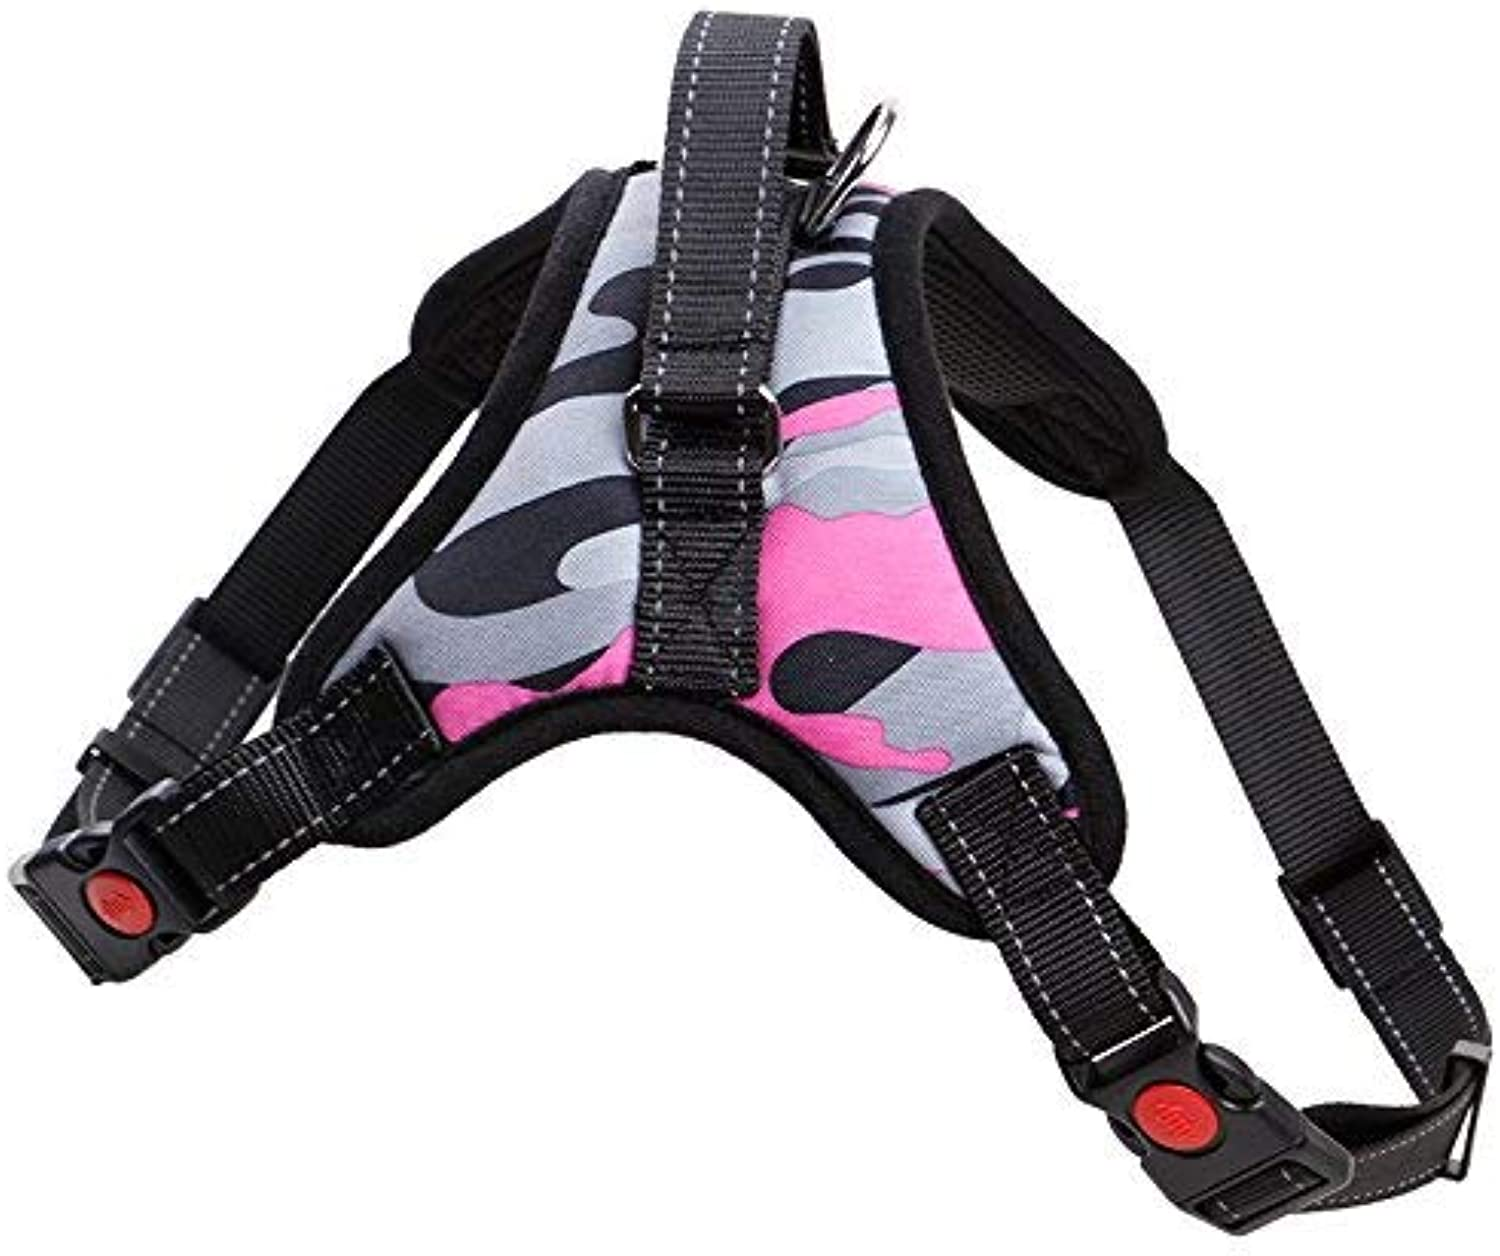 Luciphia The Original Control Dog Harness No Pull & No Choke Design, Luxurious Padded Vest, EcoFriendly